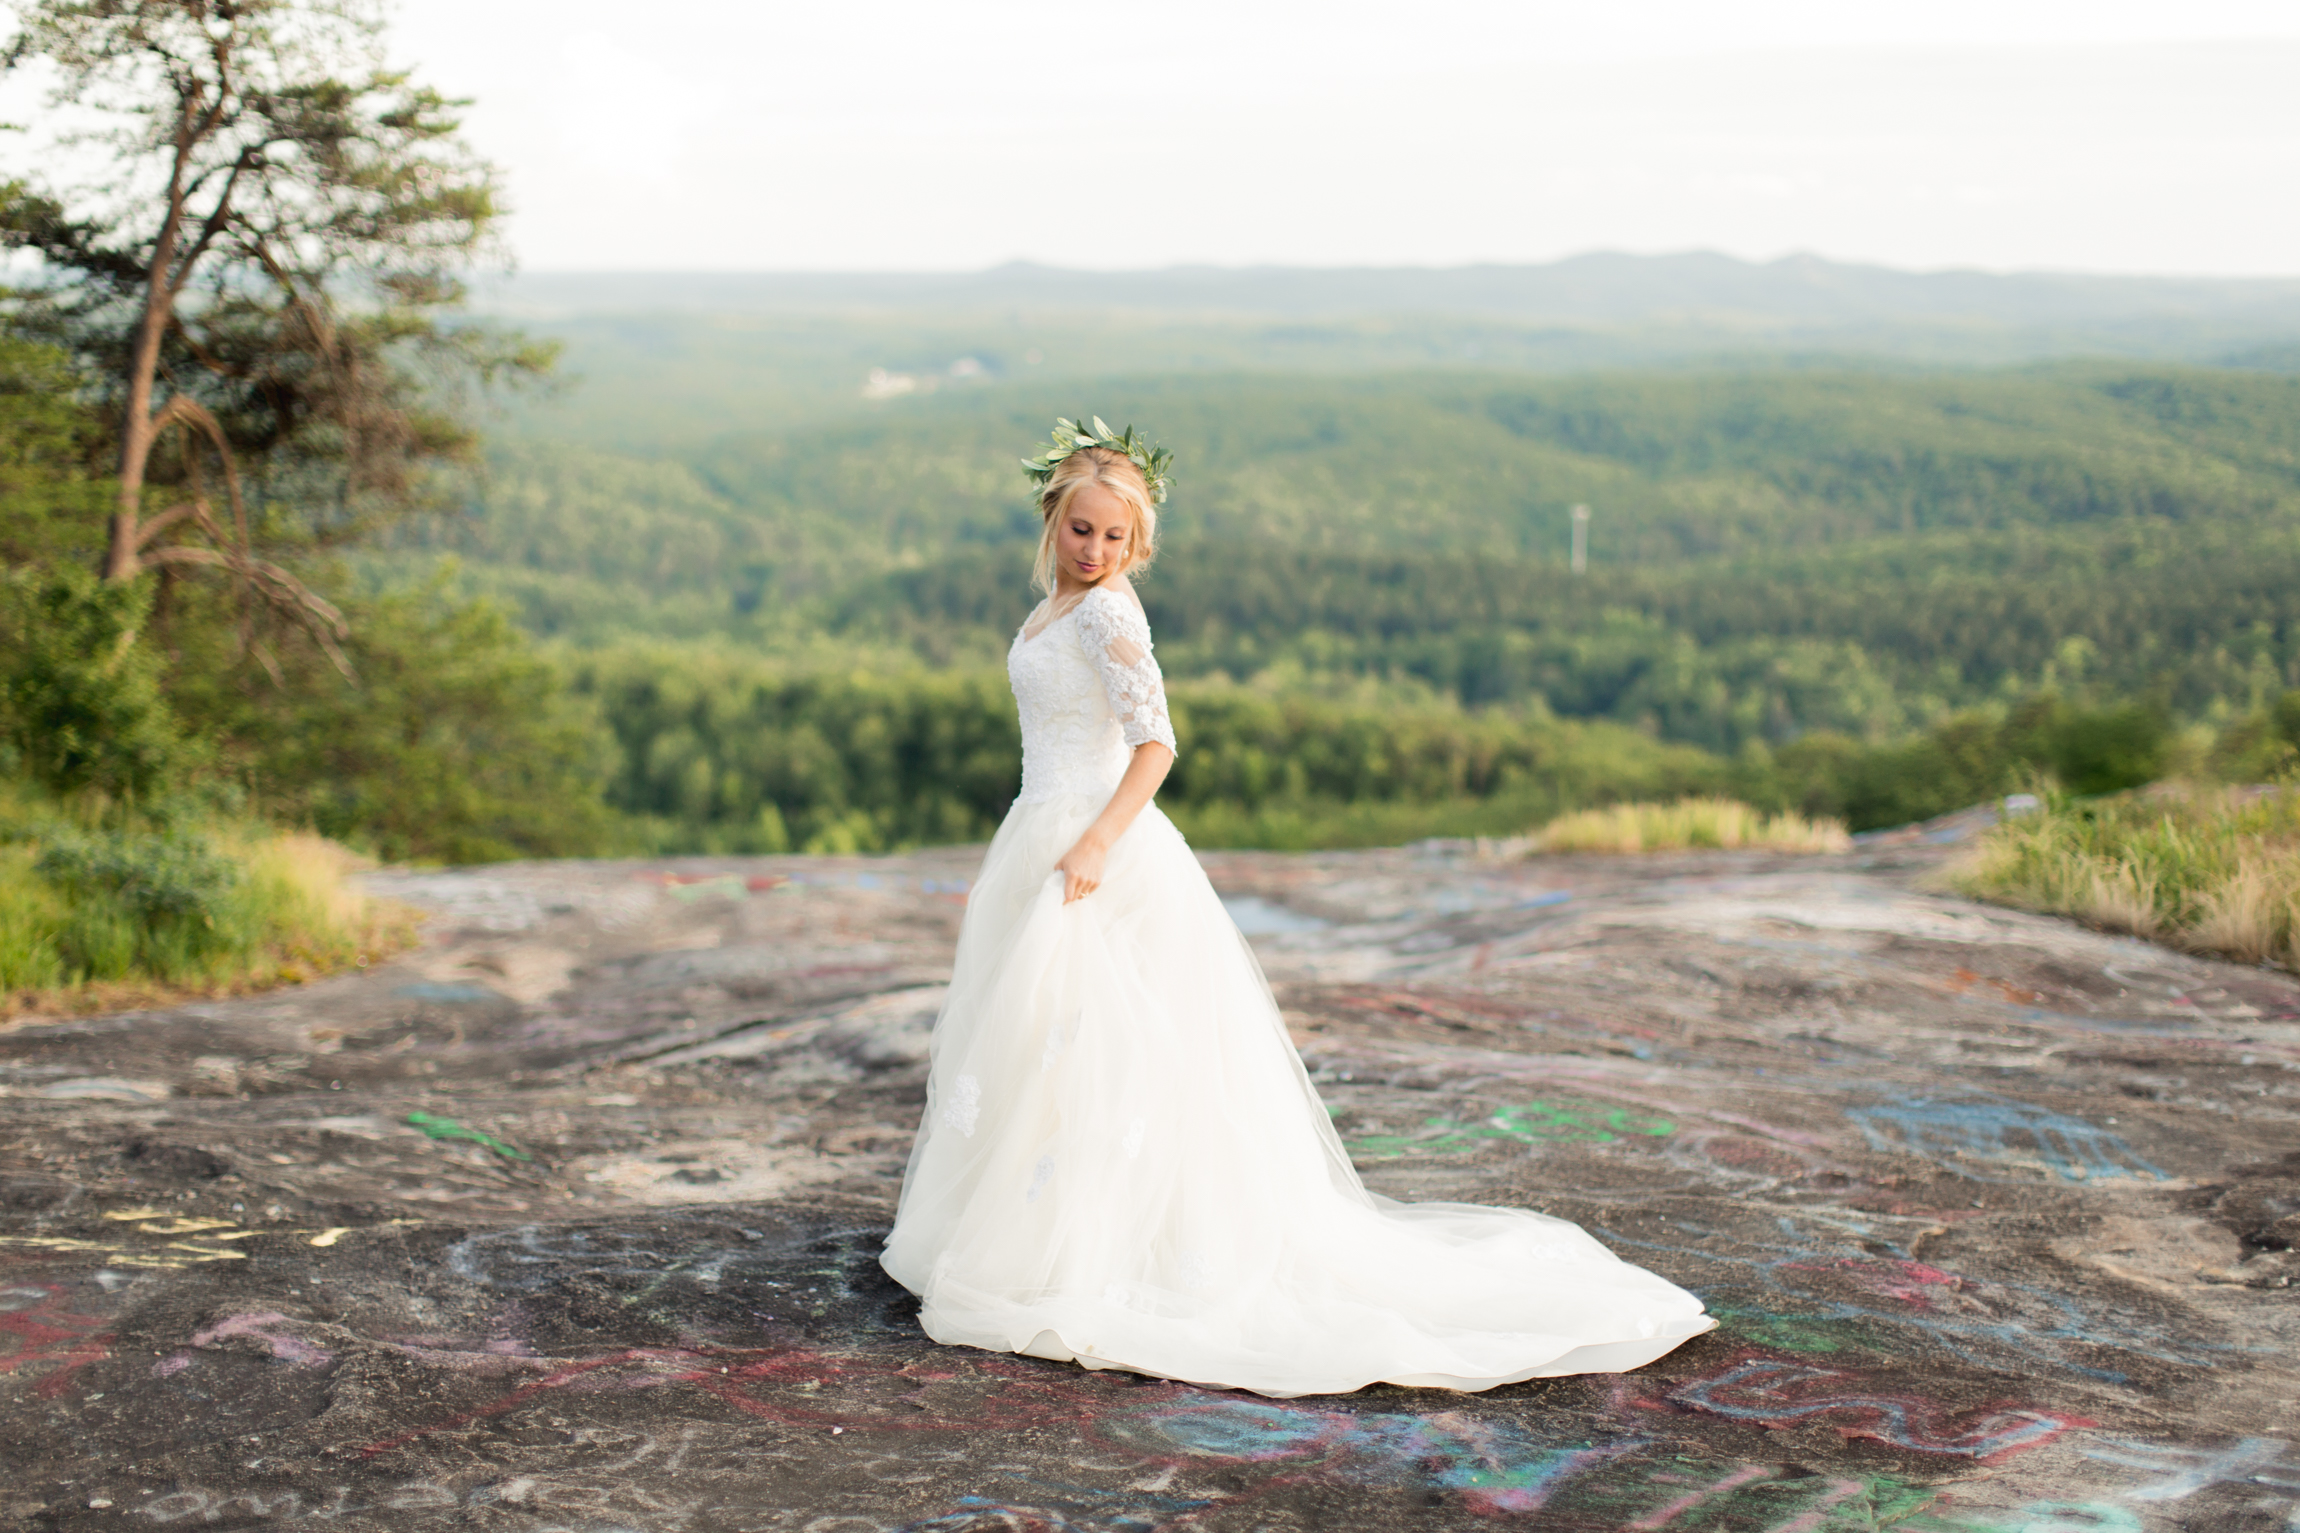 Lauren-Bald Rock South Carolina Bridal Photos-0396.jpg